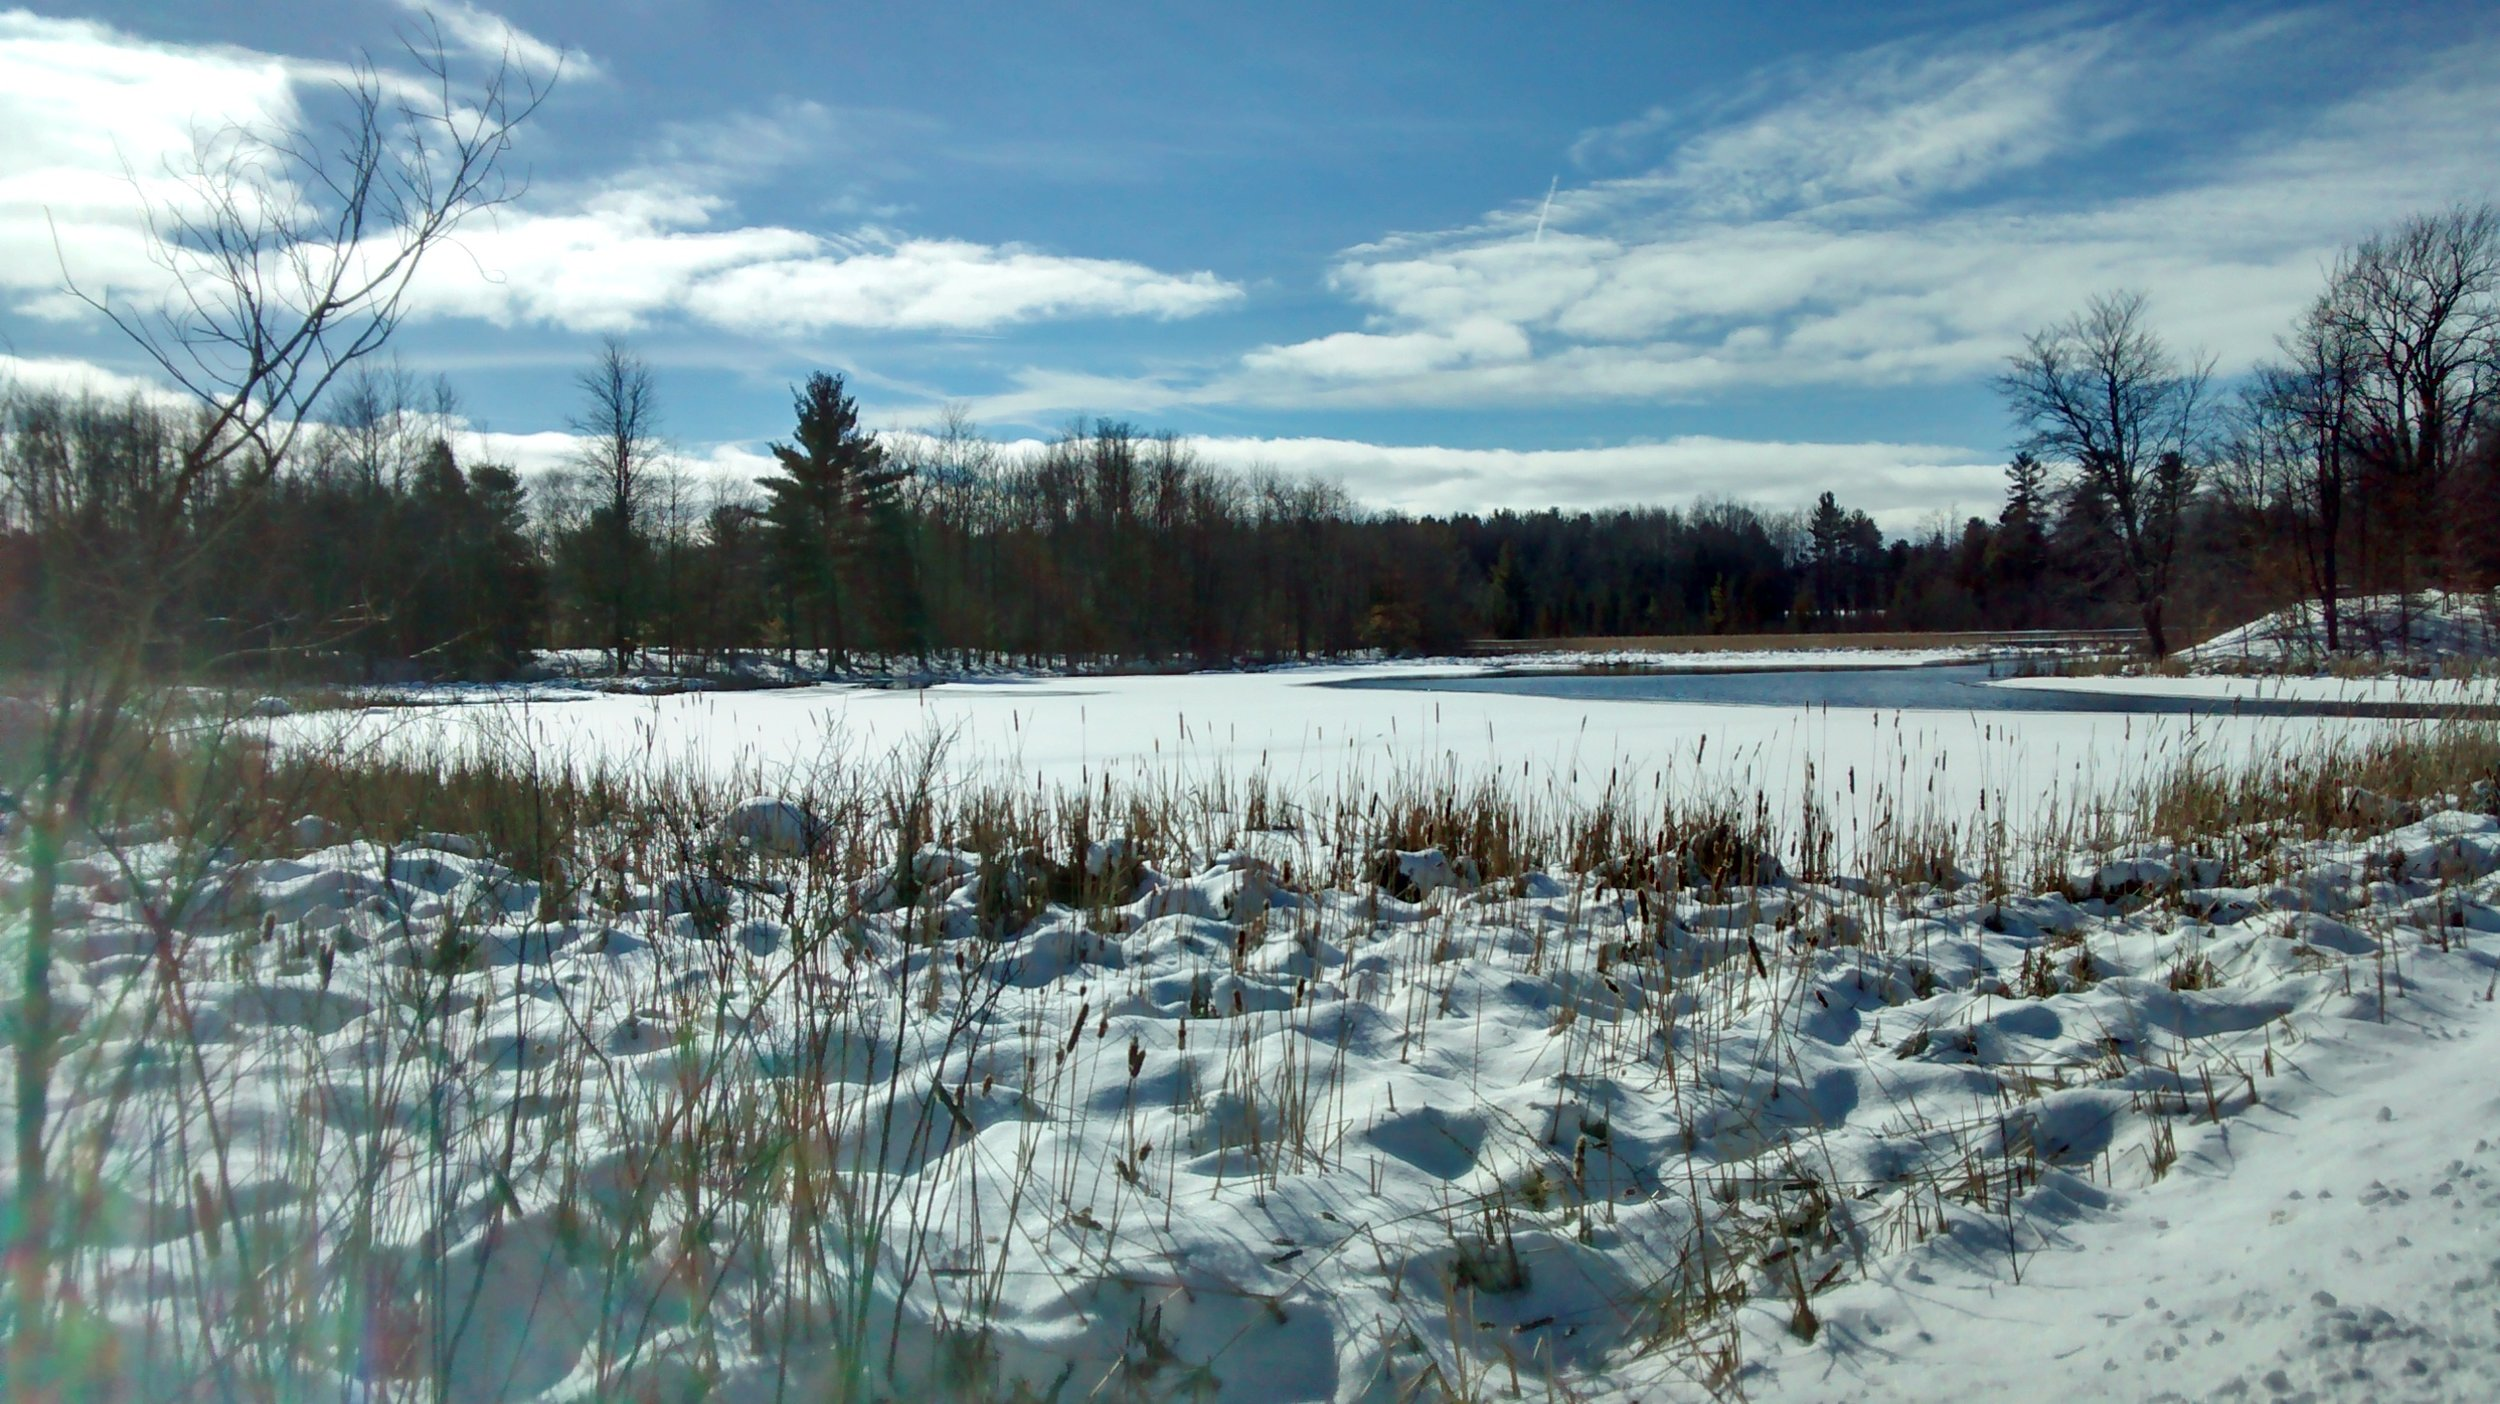 February at Gales Pond